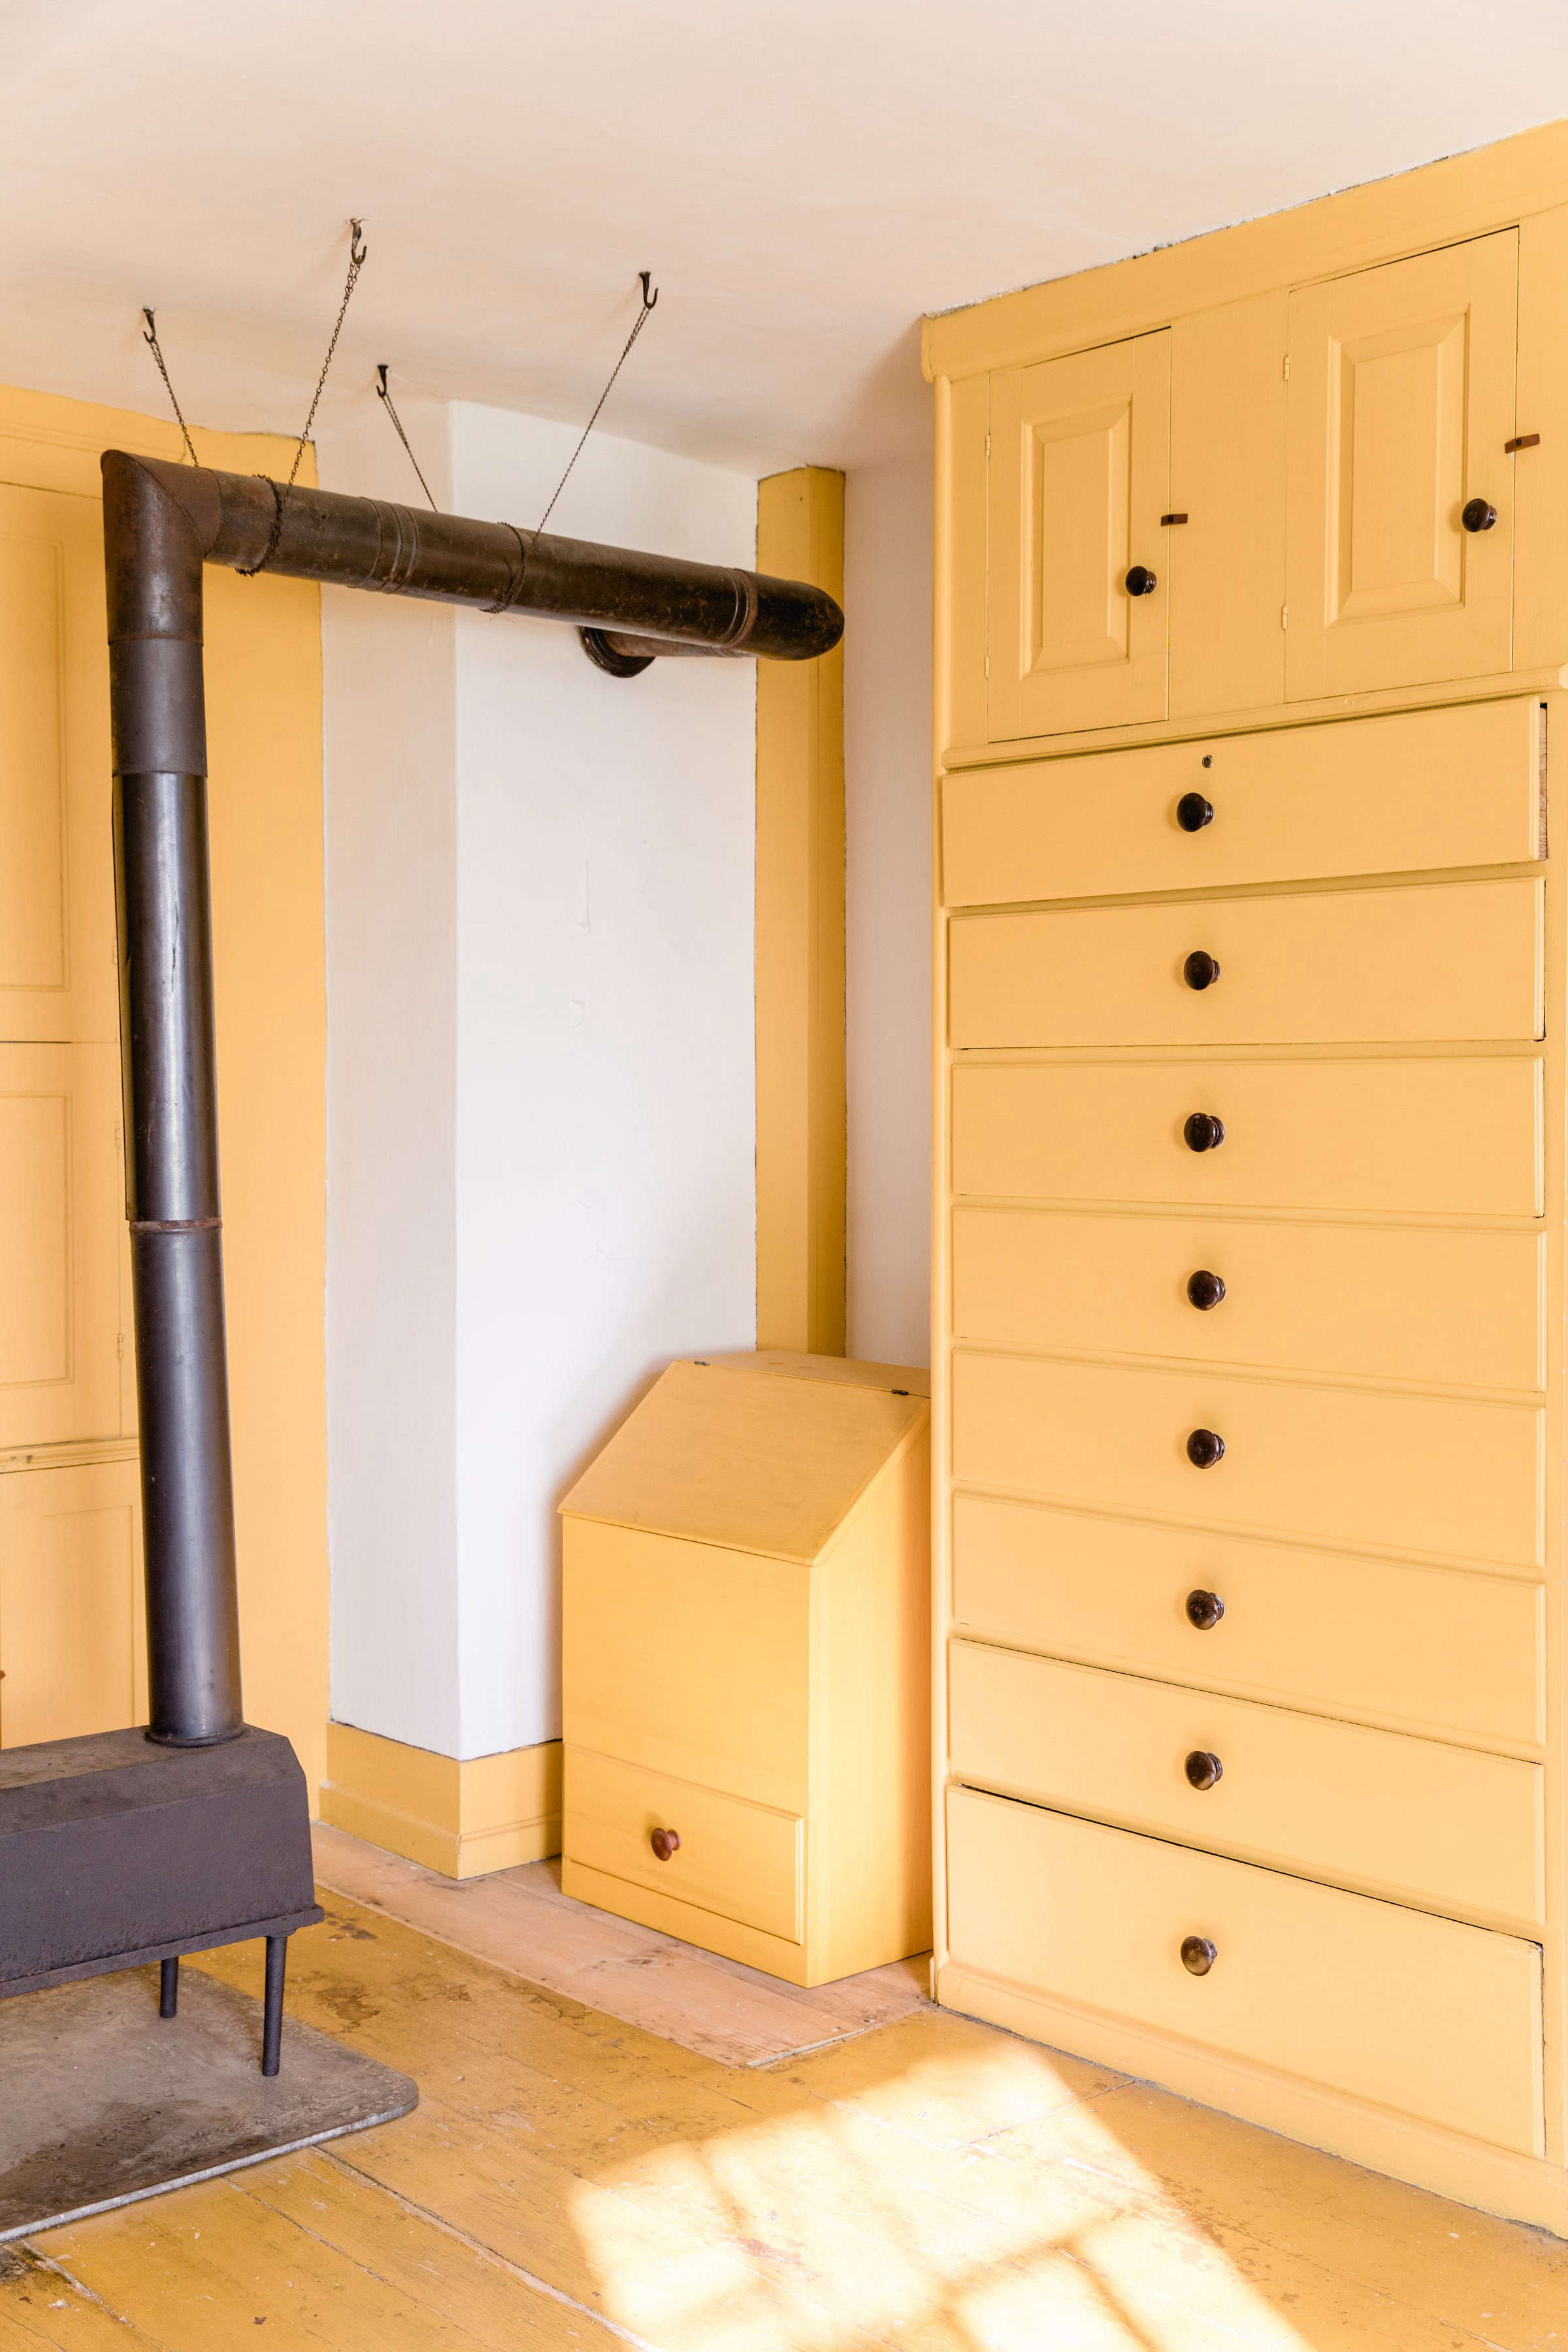 Yellow Cabinetry at Canterbury Shaker Village, Photo by Erin Little